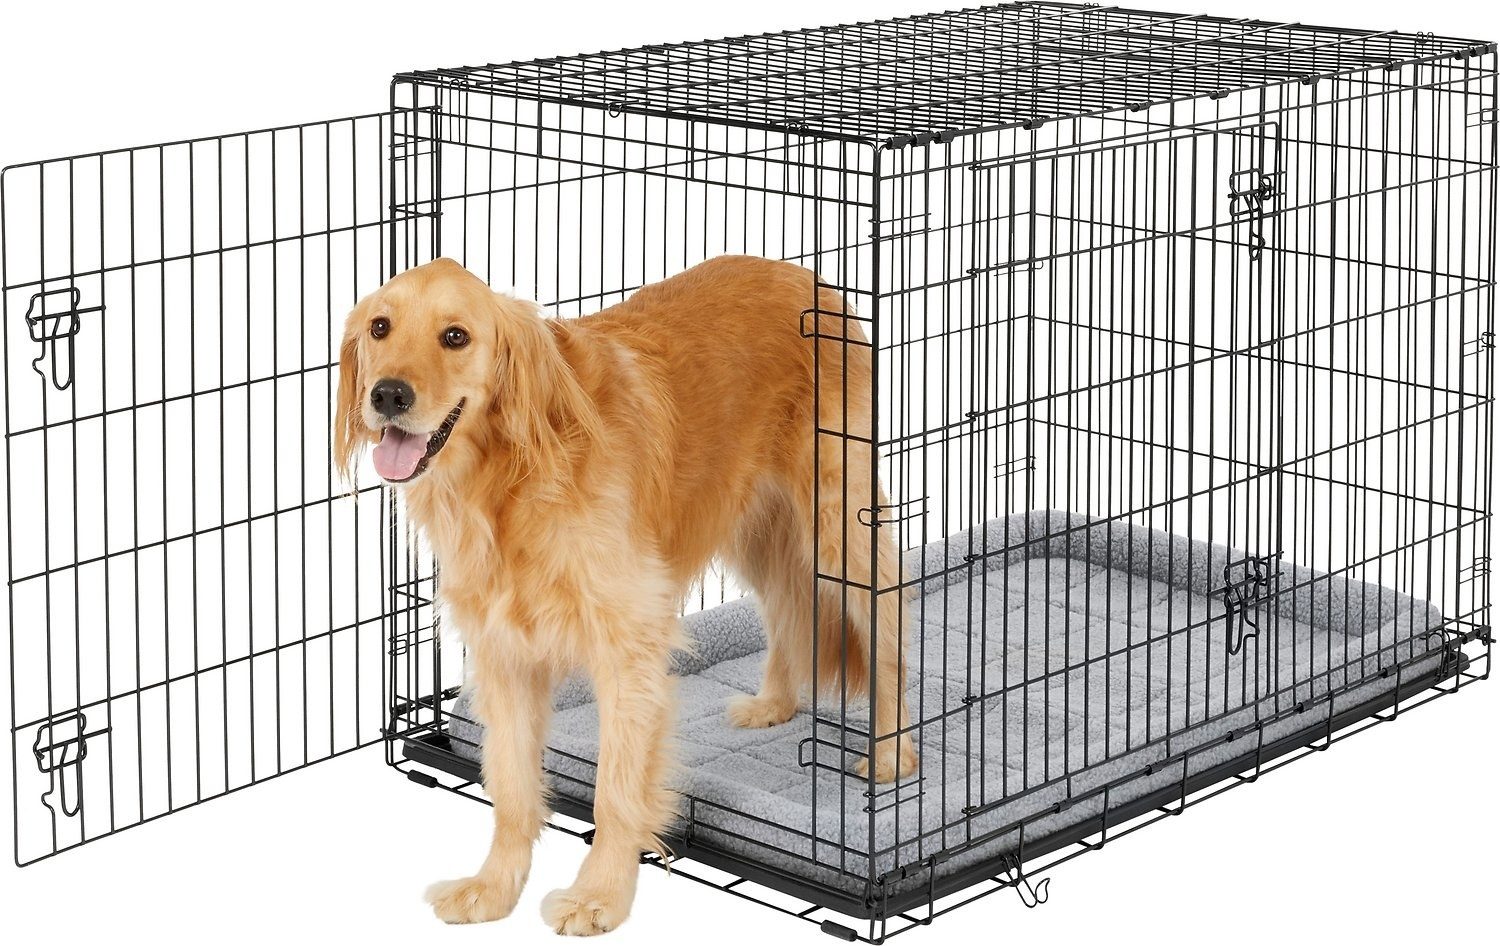 A Golden Retriever dog standing up in the metal dog crate.